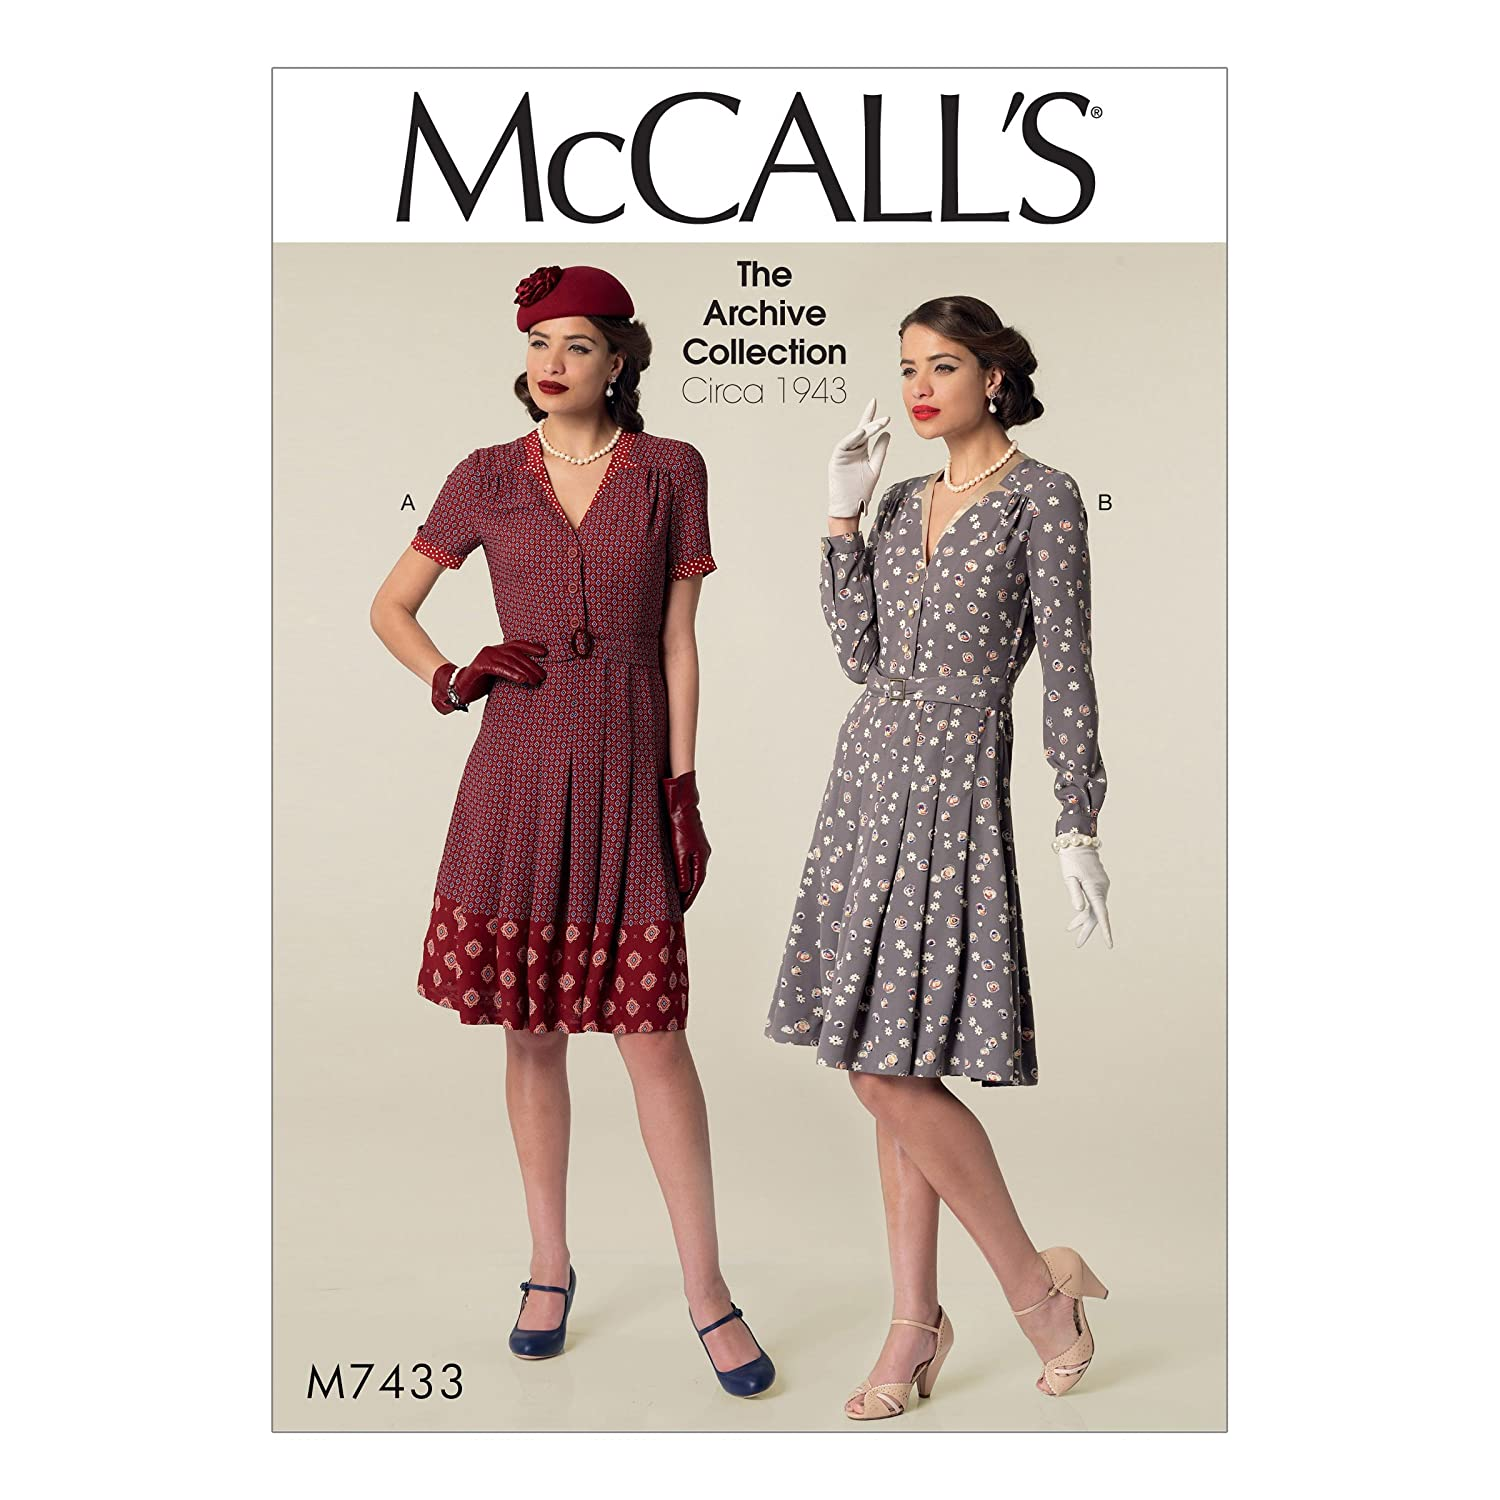 1940s Sewing Patterns – Dresses, Overalls, Lingerie etc McCalls Patterns M7433E50 Misses Inverted Notch-Collar Shirt Dresses and Belt Sewing Pattern E5 (14-16-18-20-22) $12.00 AT vintagedancer.com